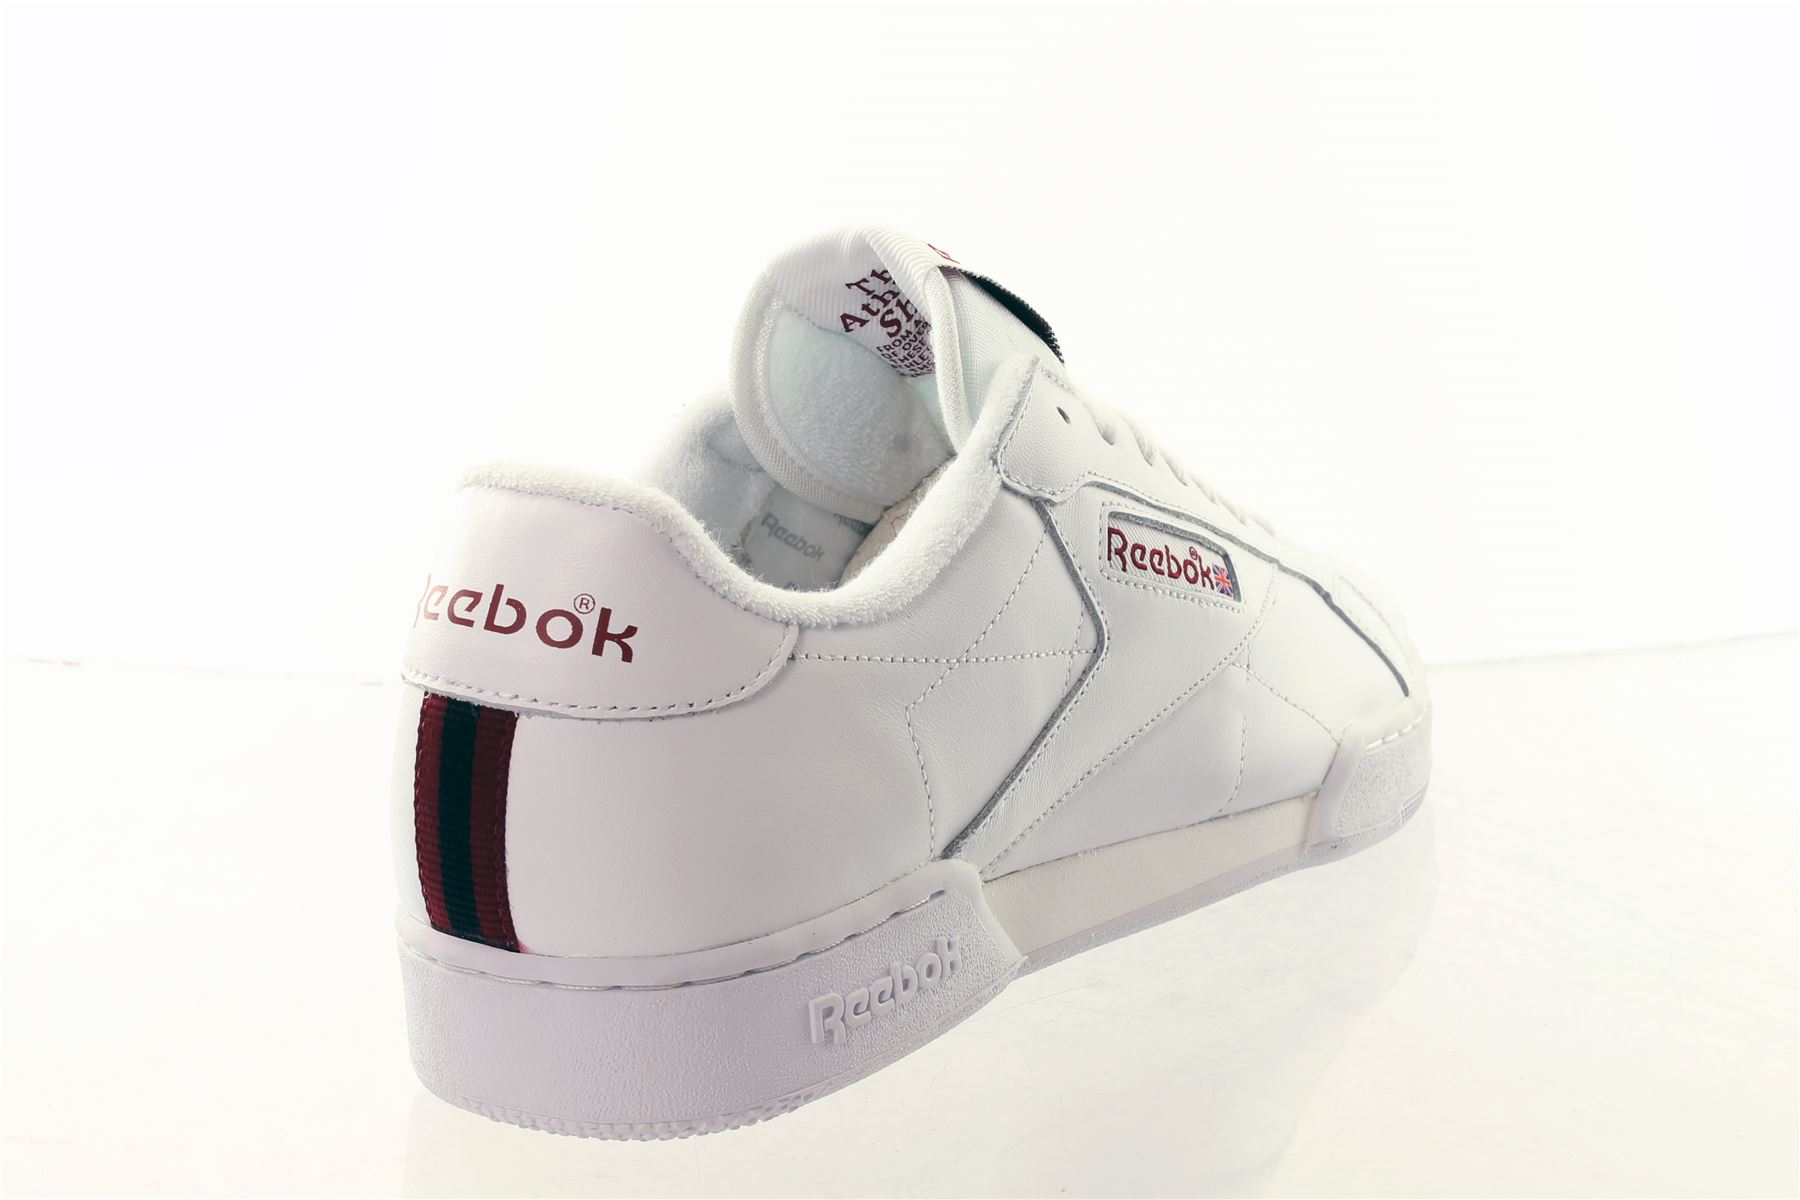 reebok classic npc ii white leather trainers